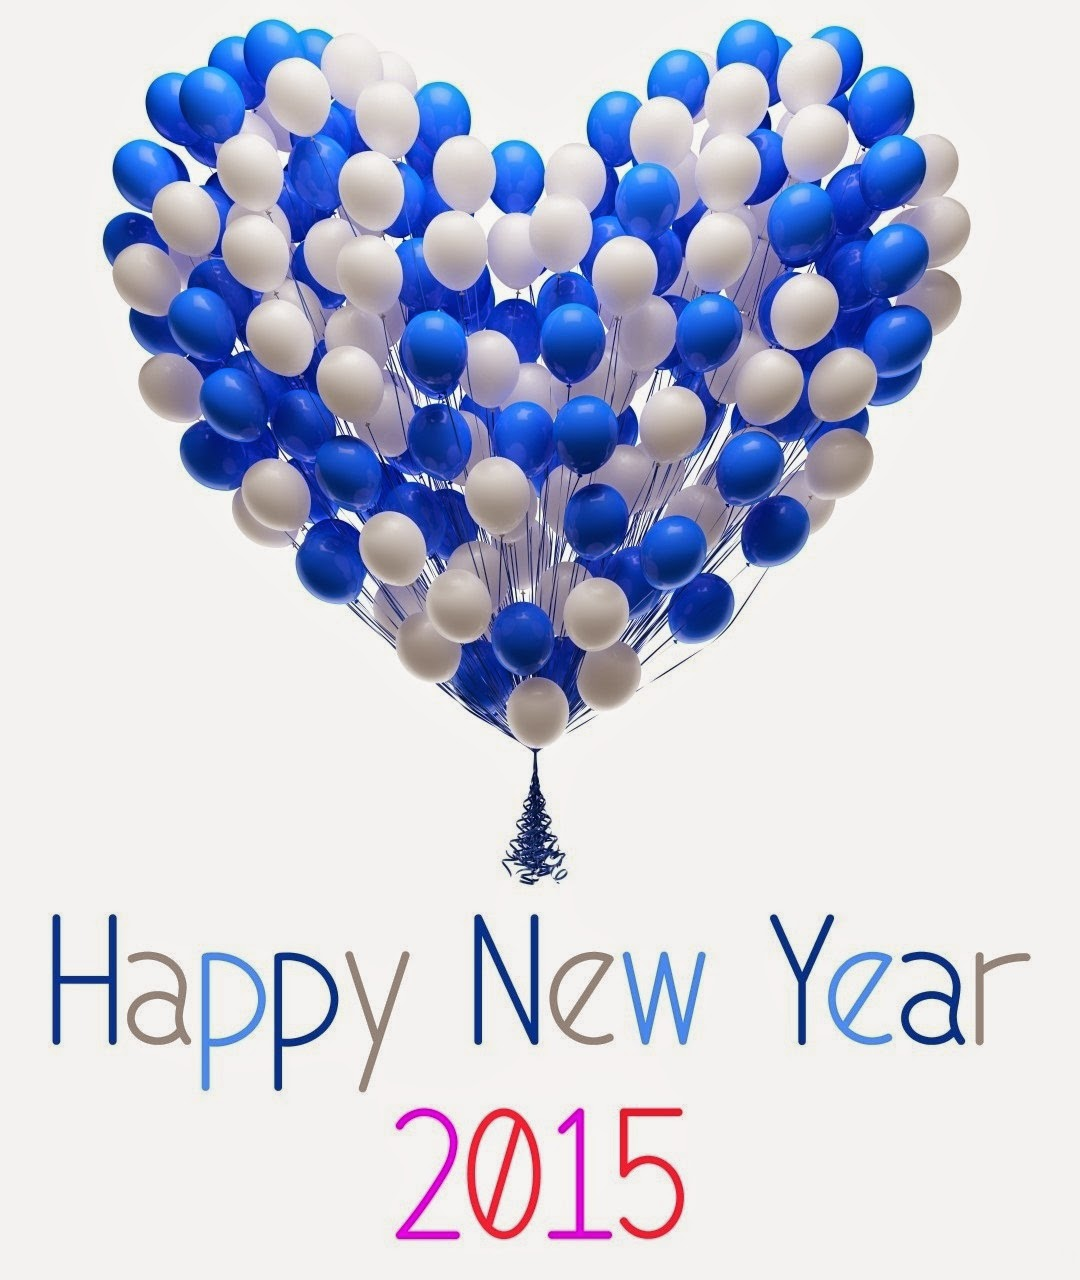 Happy New Year 2015 HD Images Wallpapers Greeting card Quotes